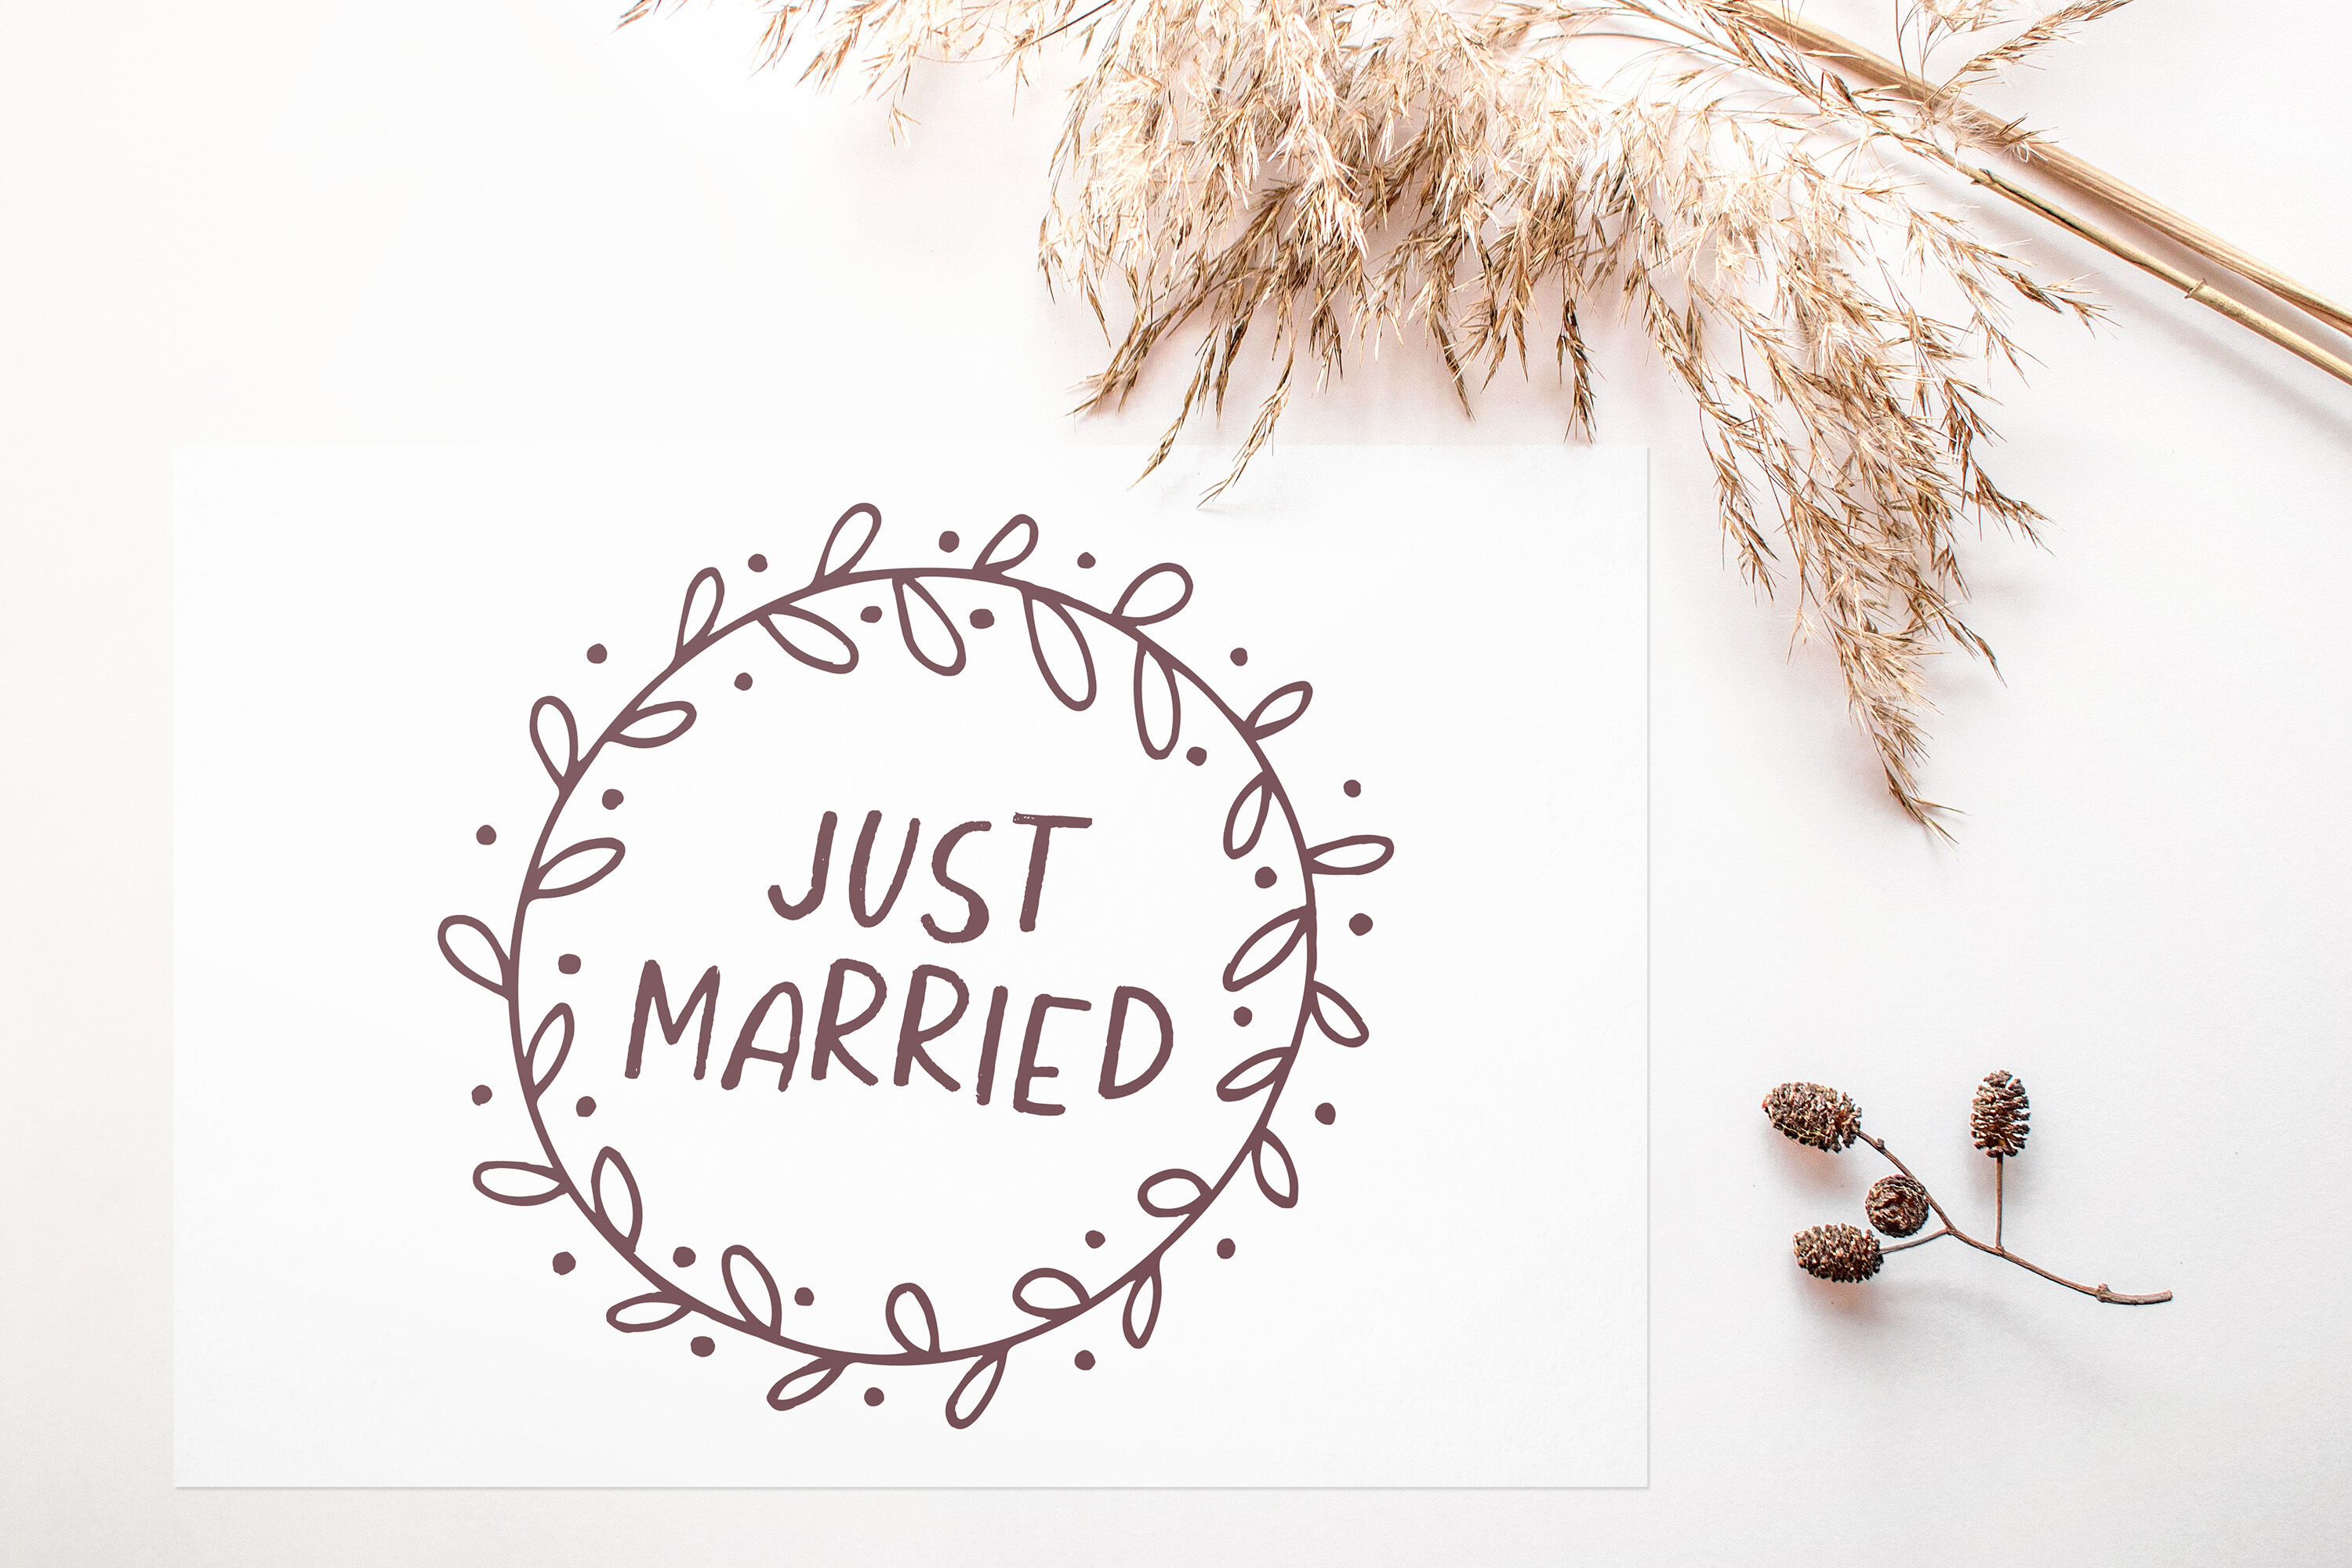 Wedding Lettering Quotes By Lovink Thehungryjpeg Com